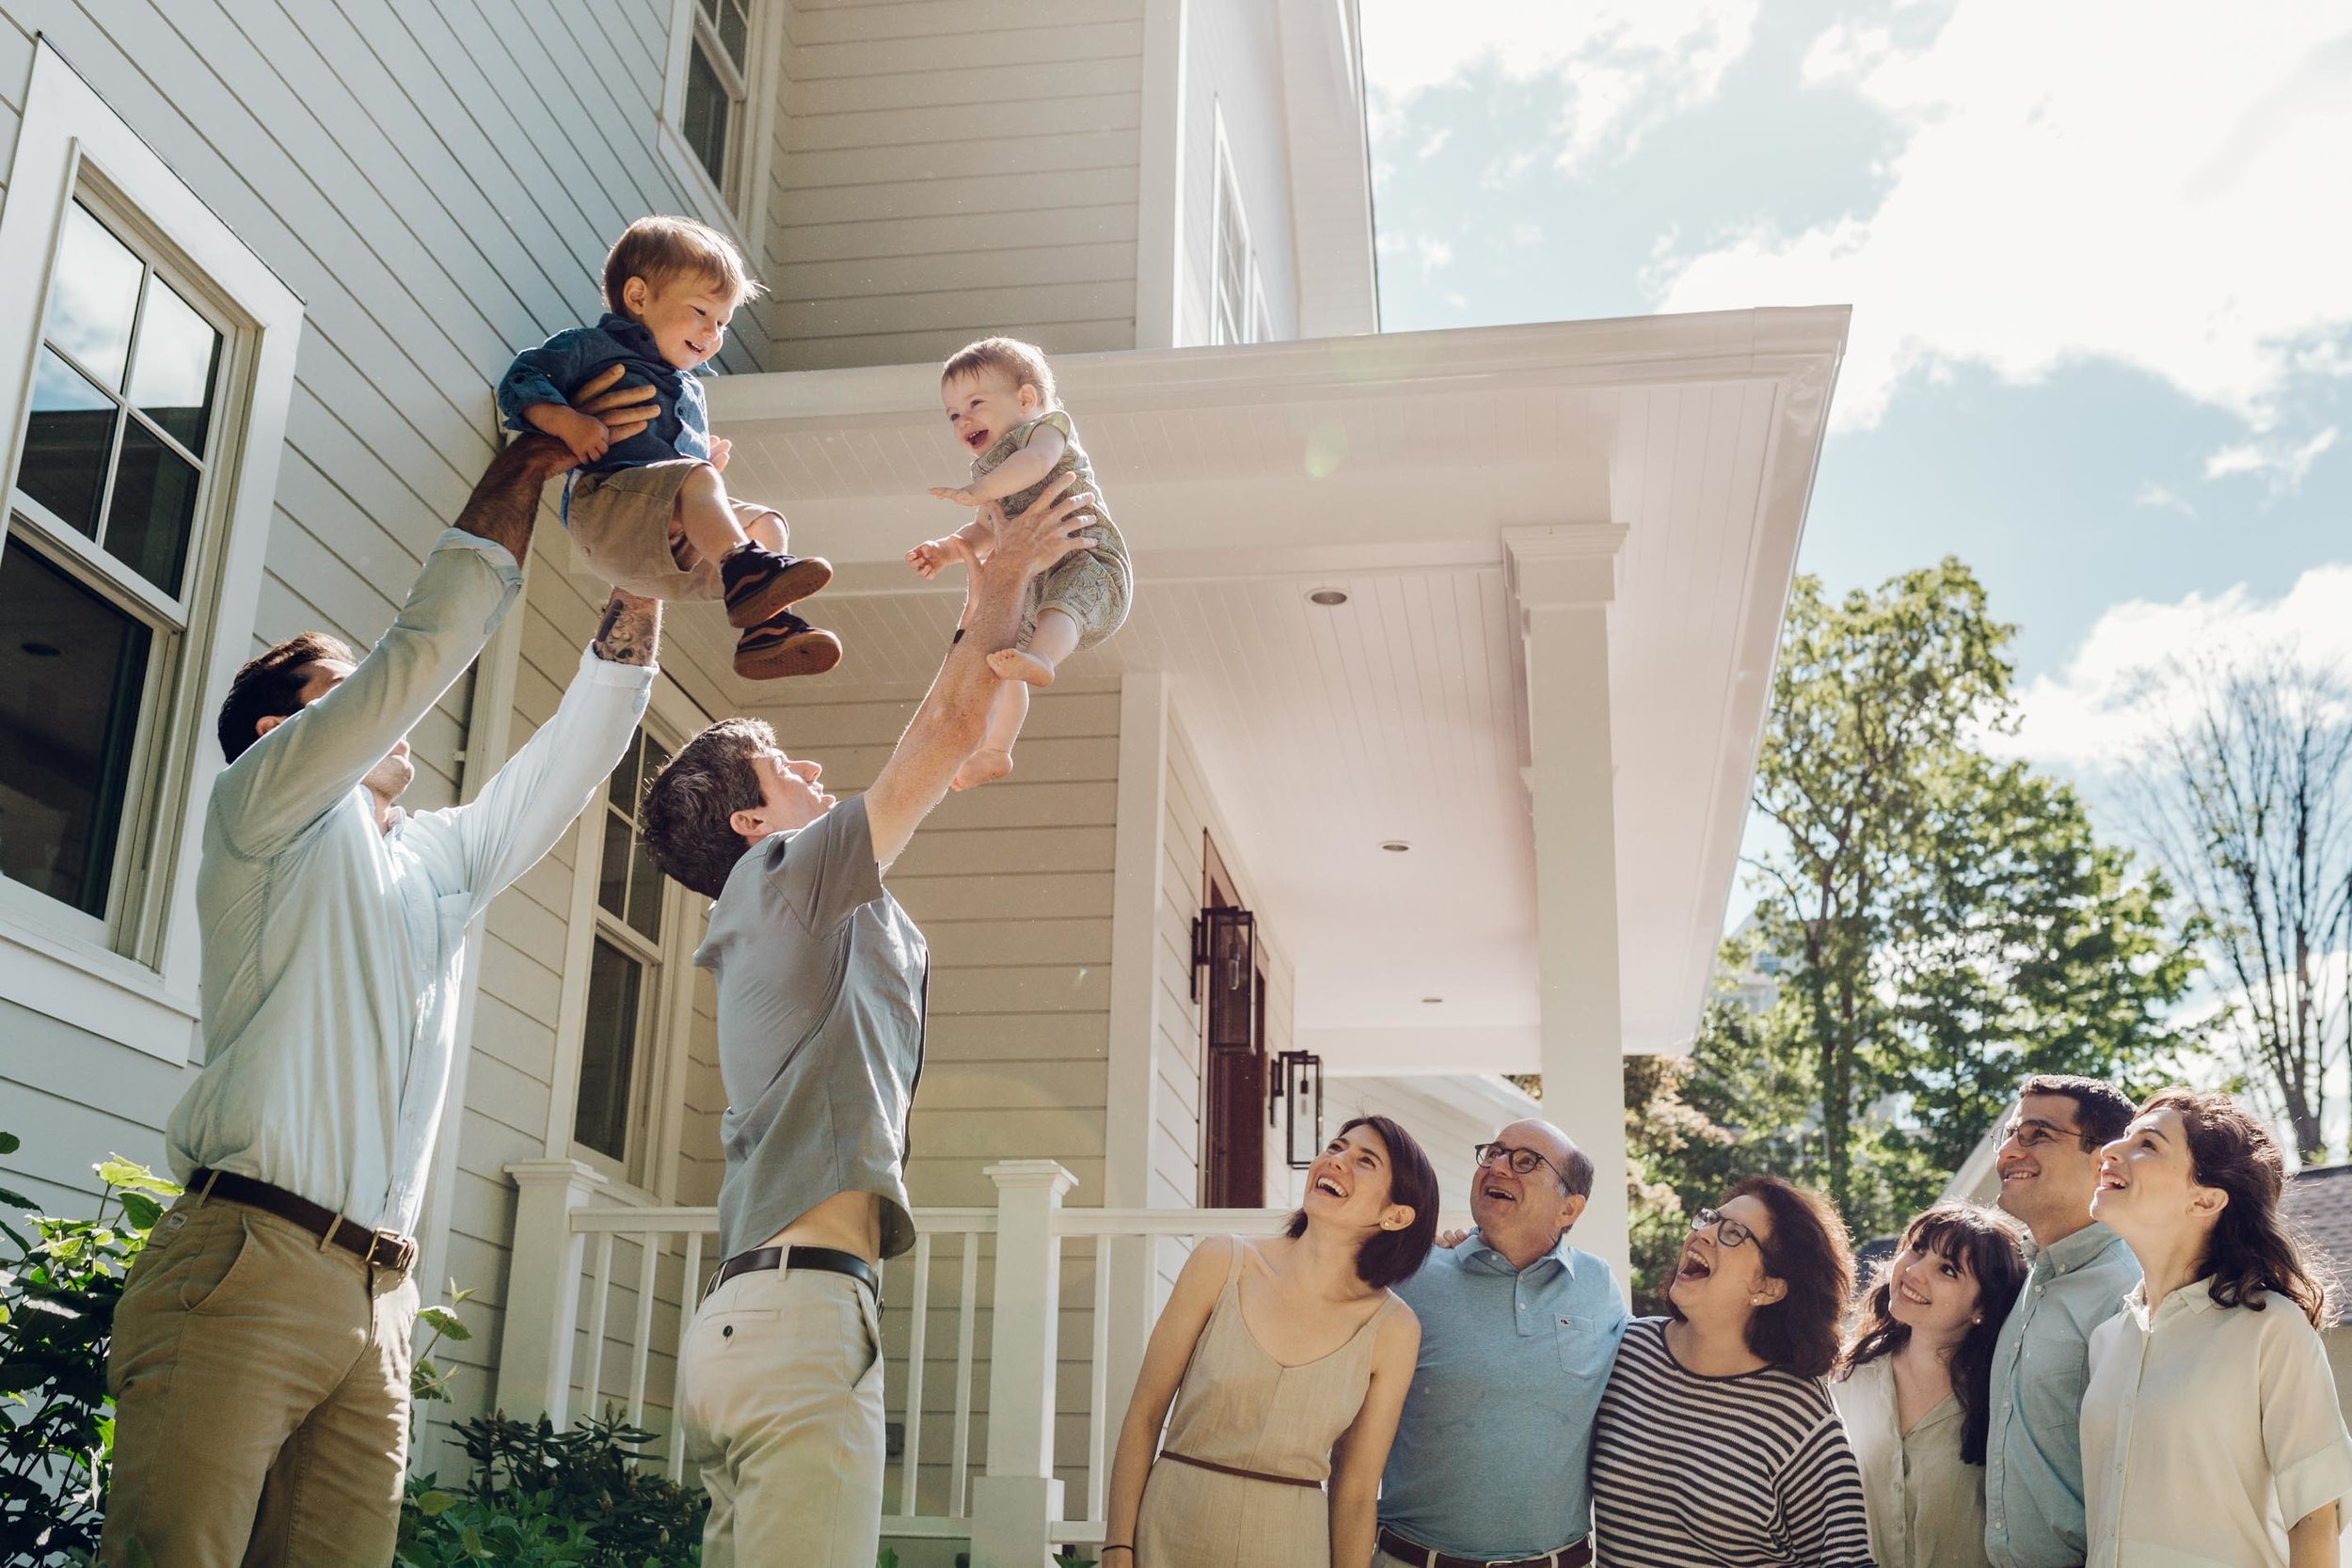 large family candid photography in greenwich ct by laura barr photography